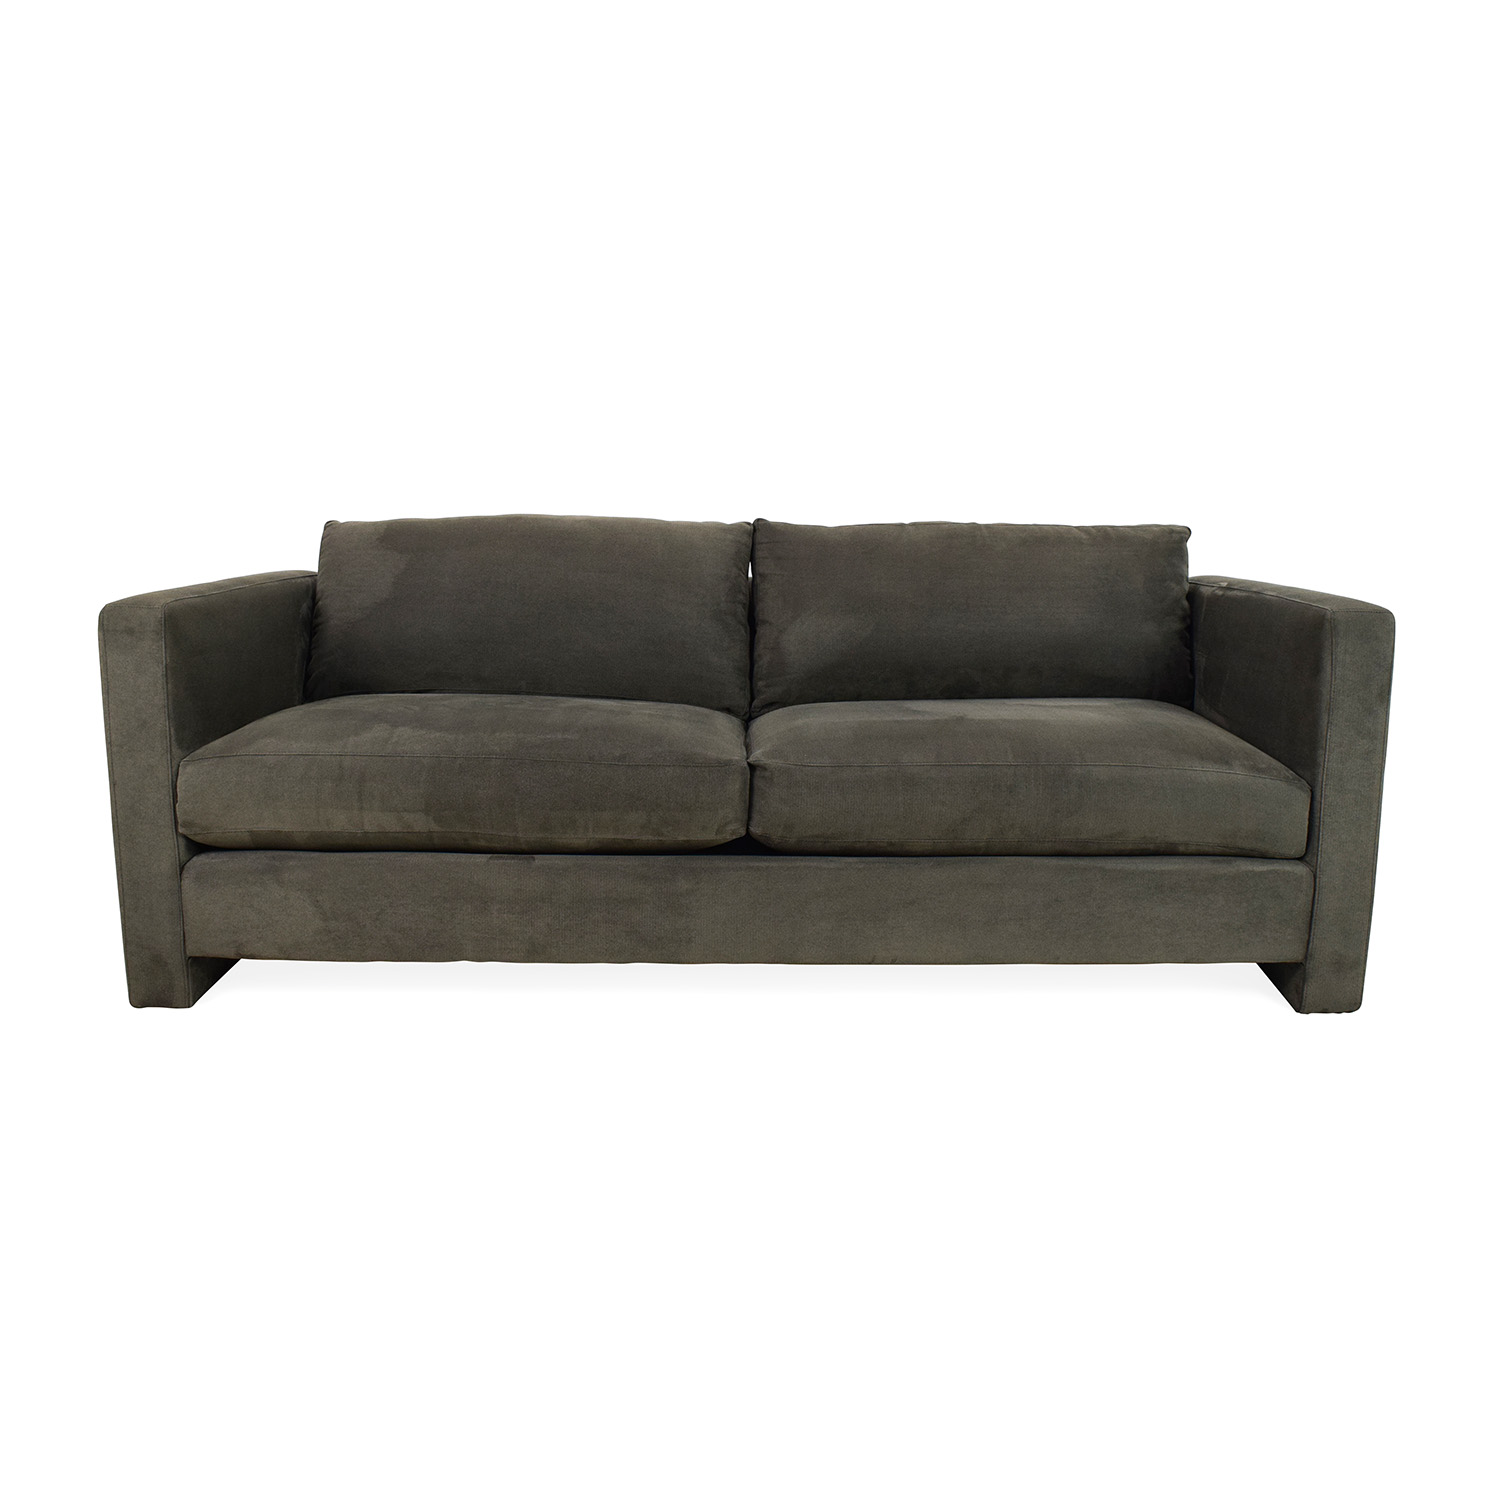 New 28 sofas for furniture diplomat sleeper sofa fold for Classic loveseat